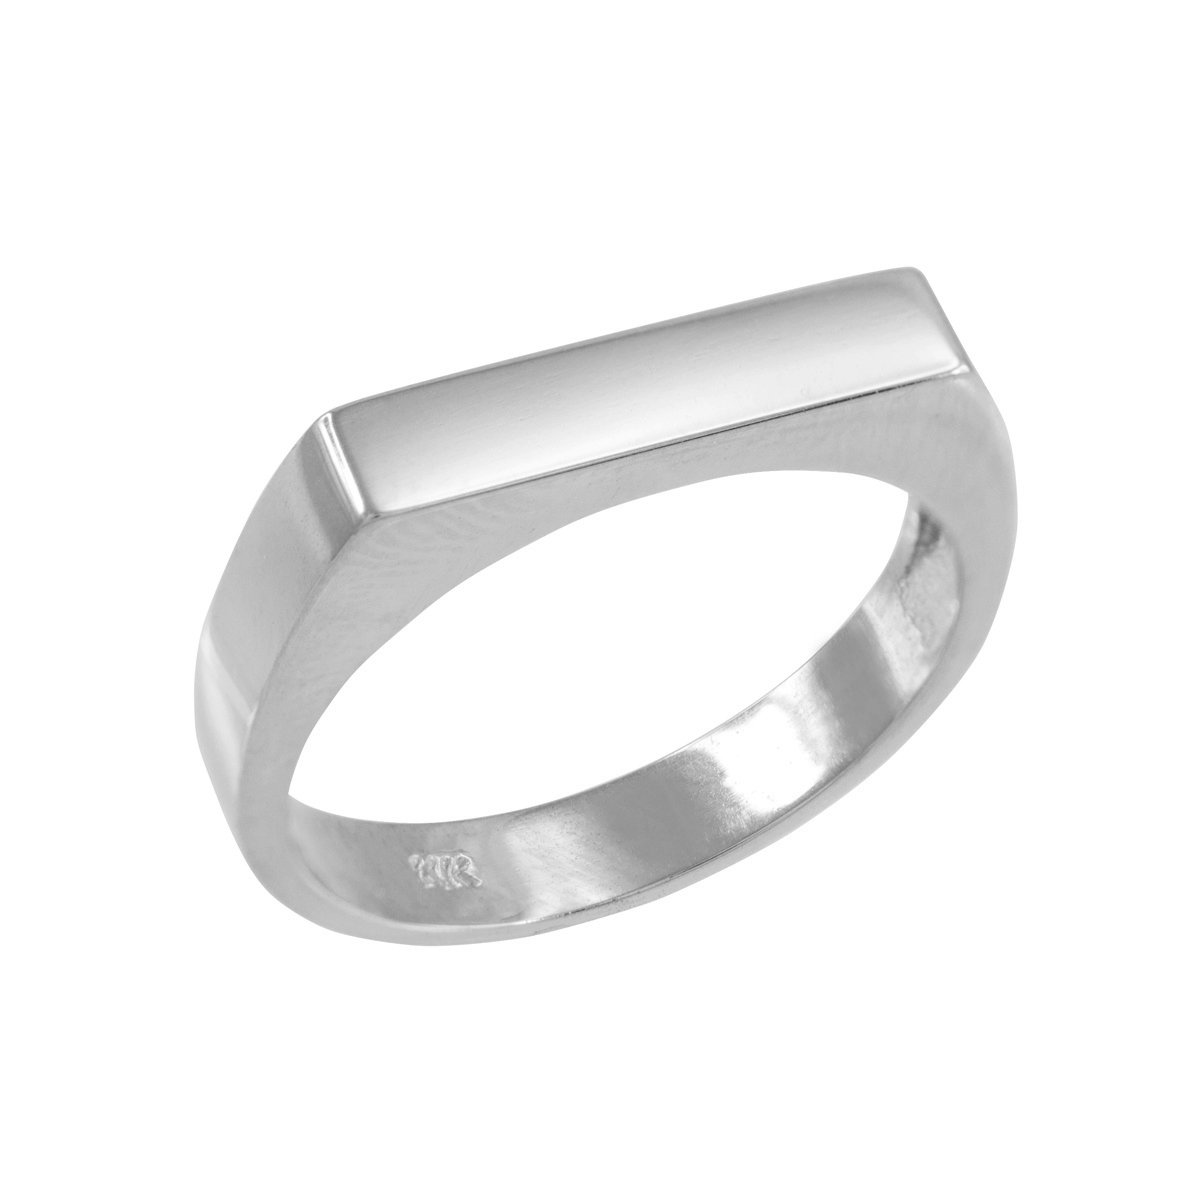 Stackable 10k White Gold Custom Engravable Flat Top Signet Ring (Size 7)